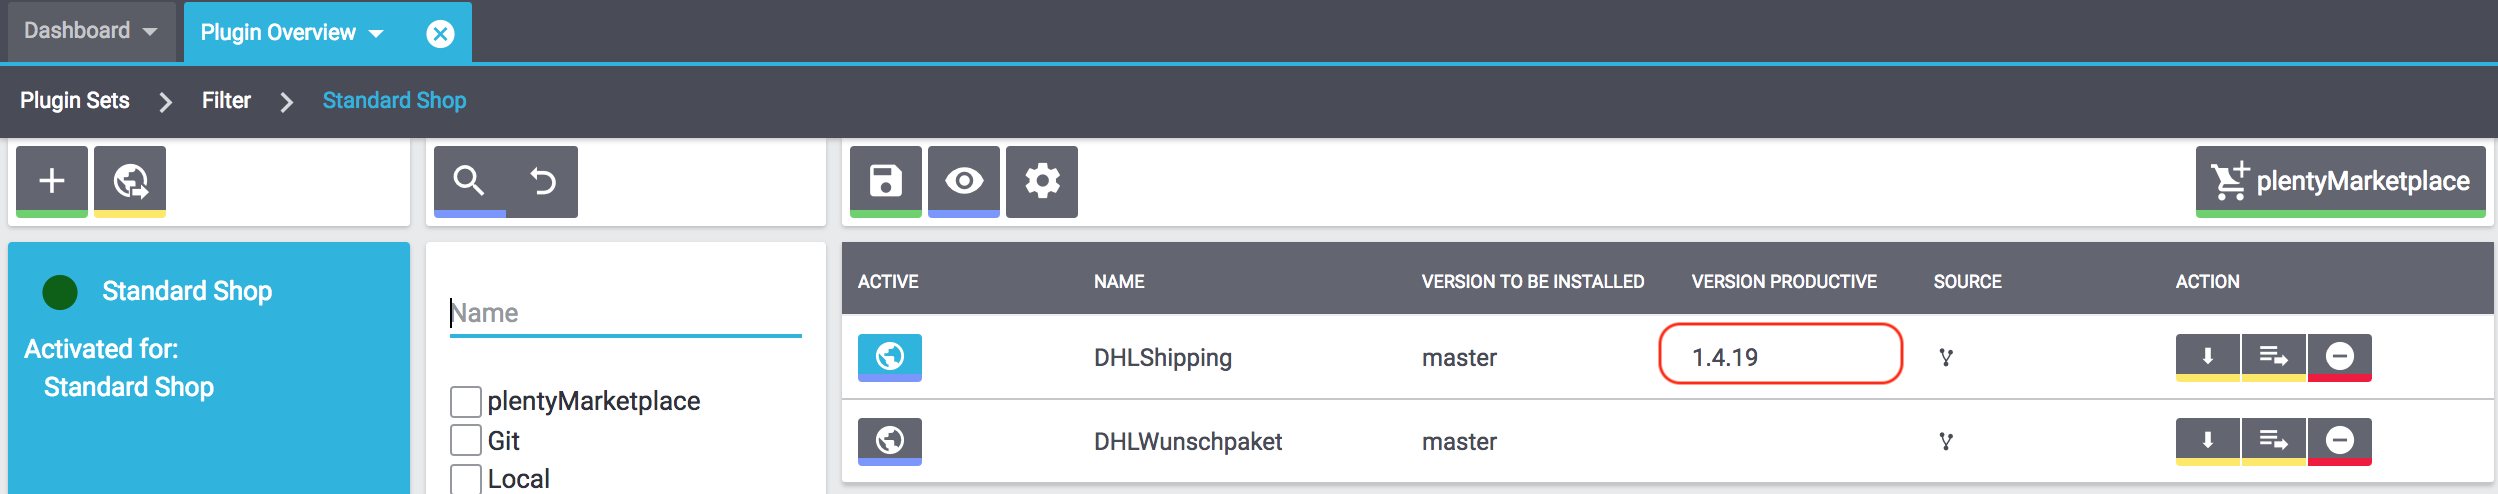 DHL plugin overview version